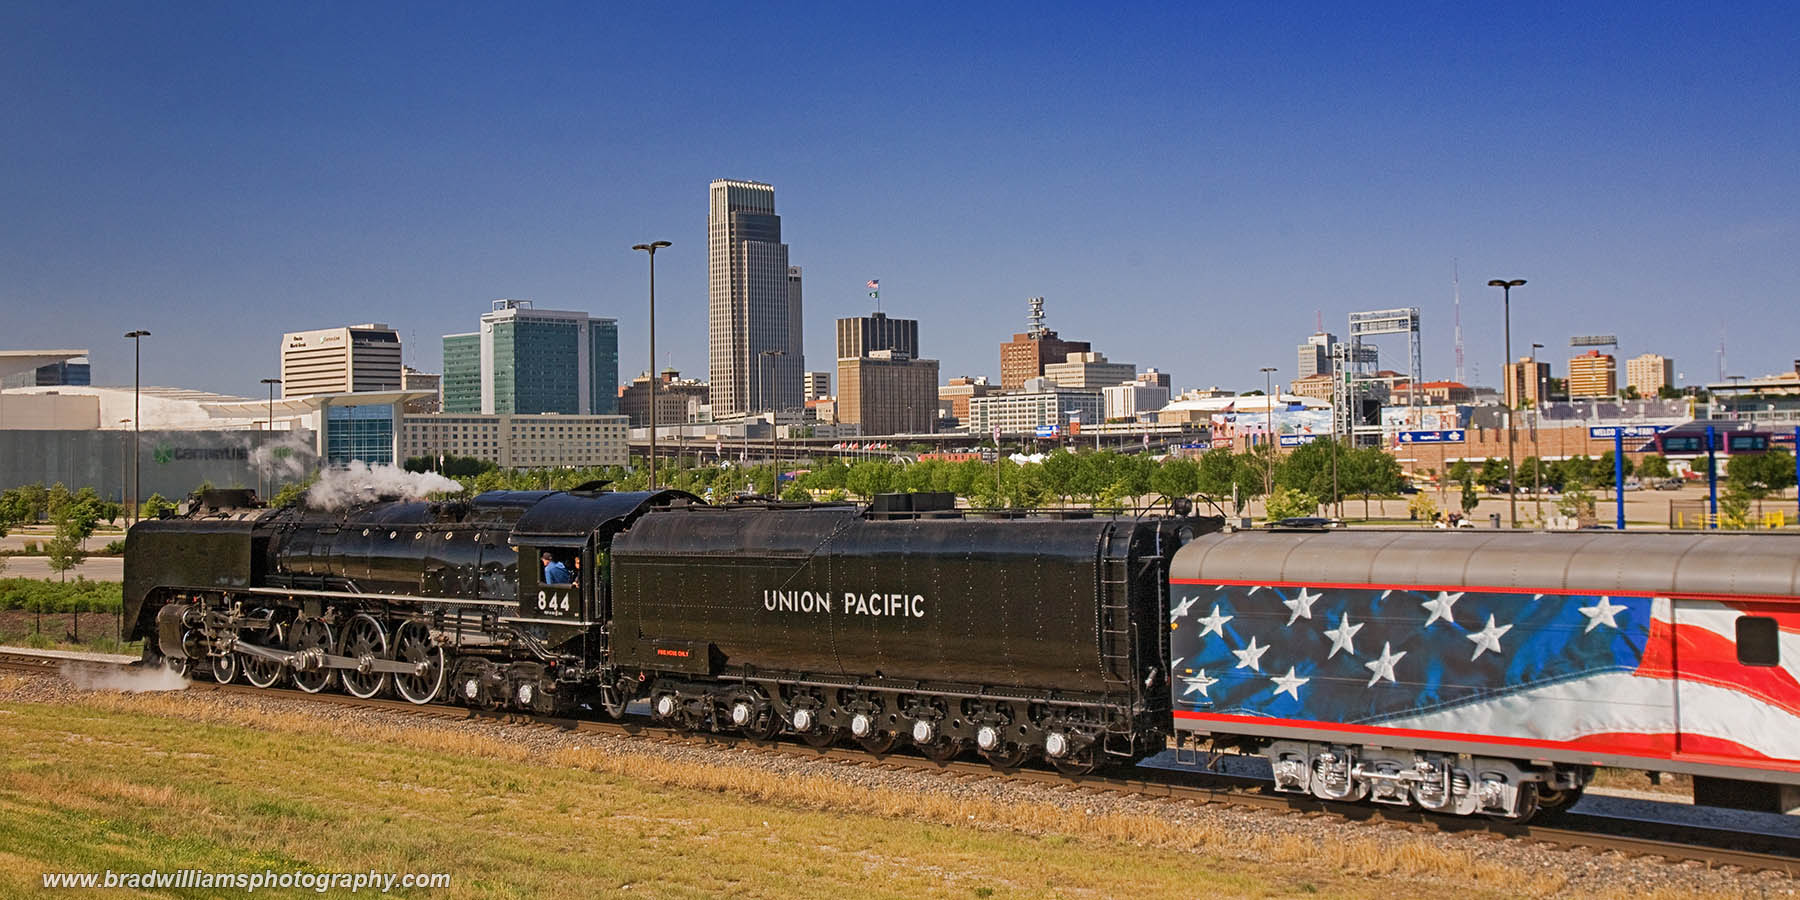 Omaha, Union Pacific, Nebraska, College World Series, Steam, Locomotive, TD Ameritrade Park Omaha, Skyline, photo